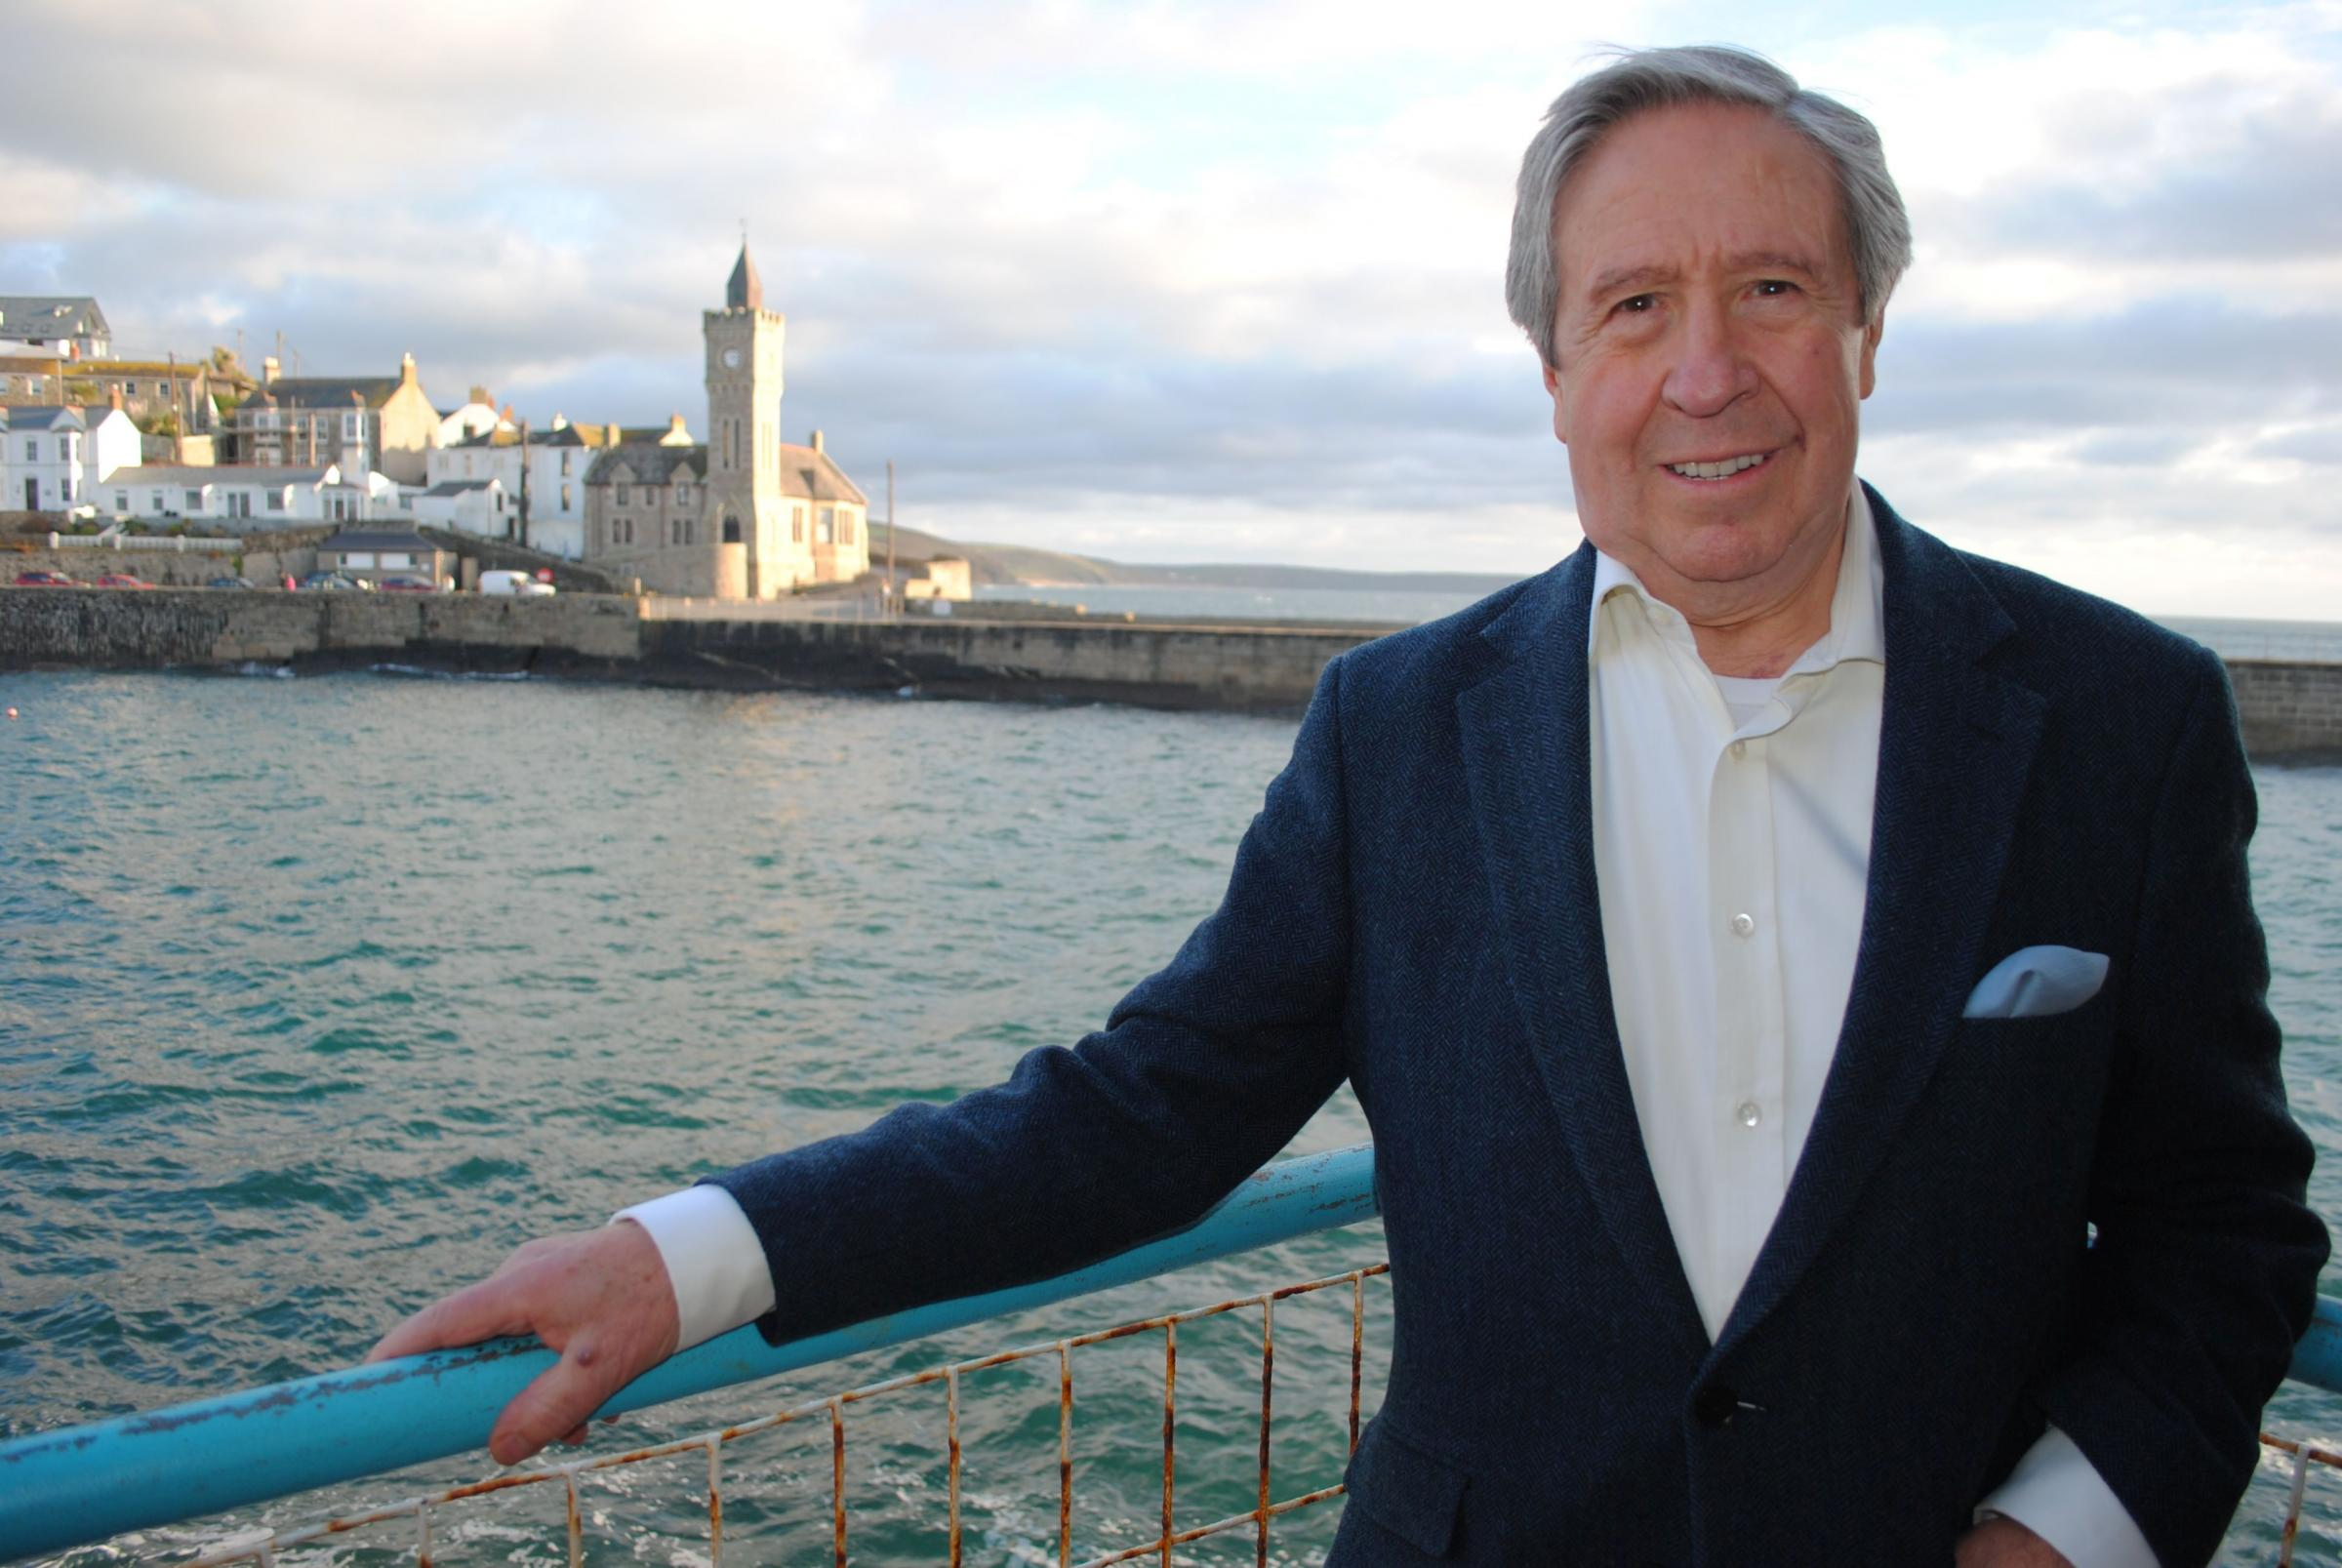 Trevor Osborne has set out his masterplan for Porthleven